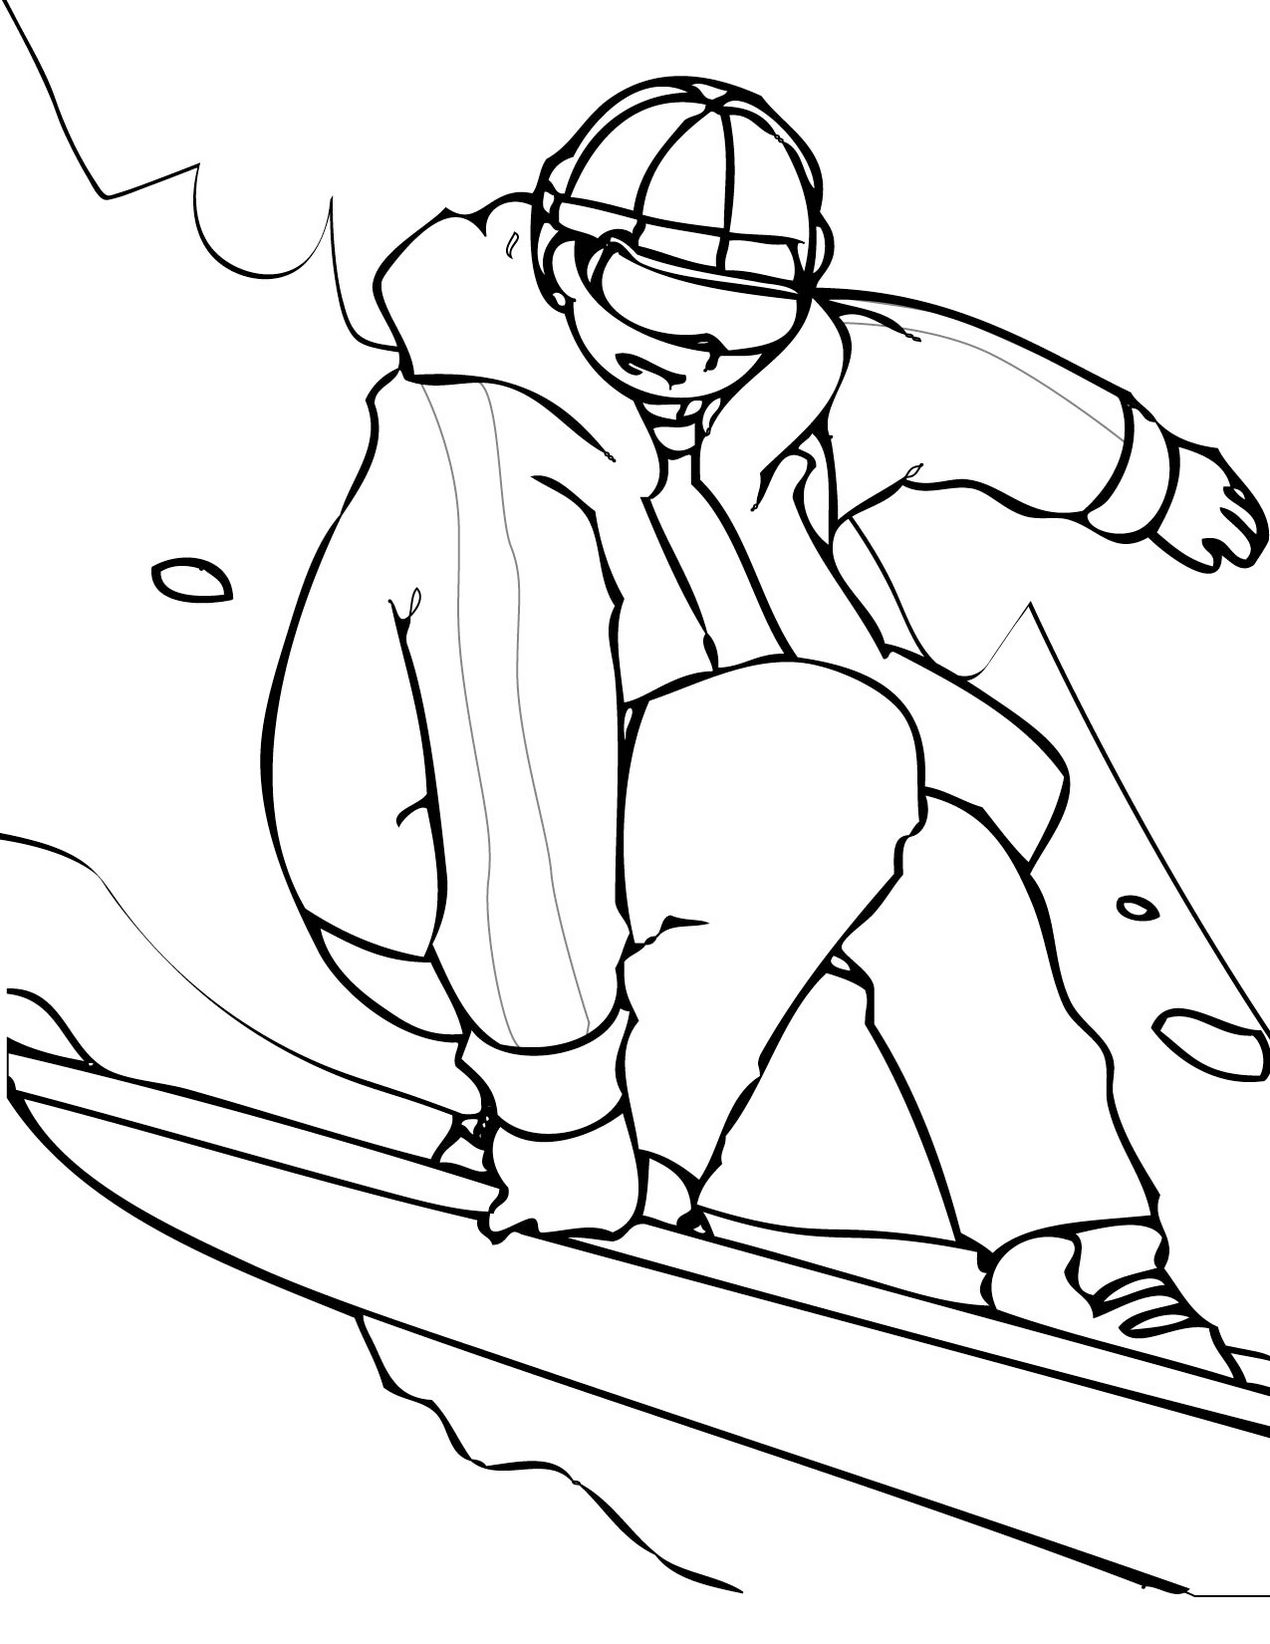 snowboarding_winter_sport_coloring_page